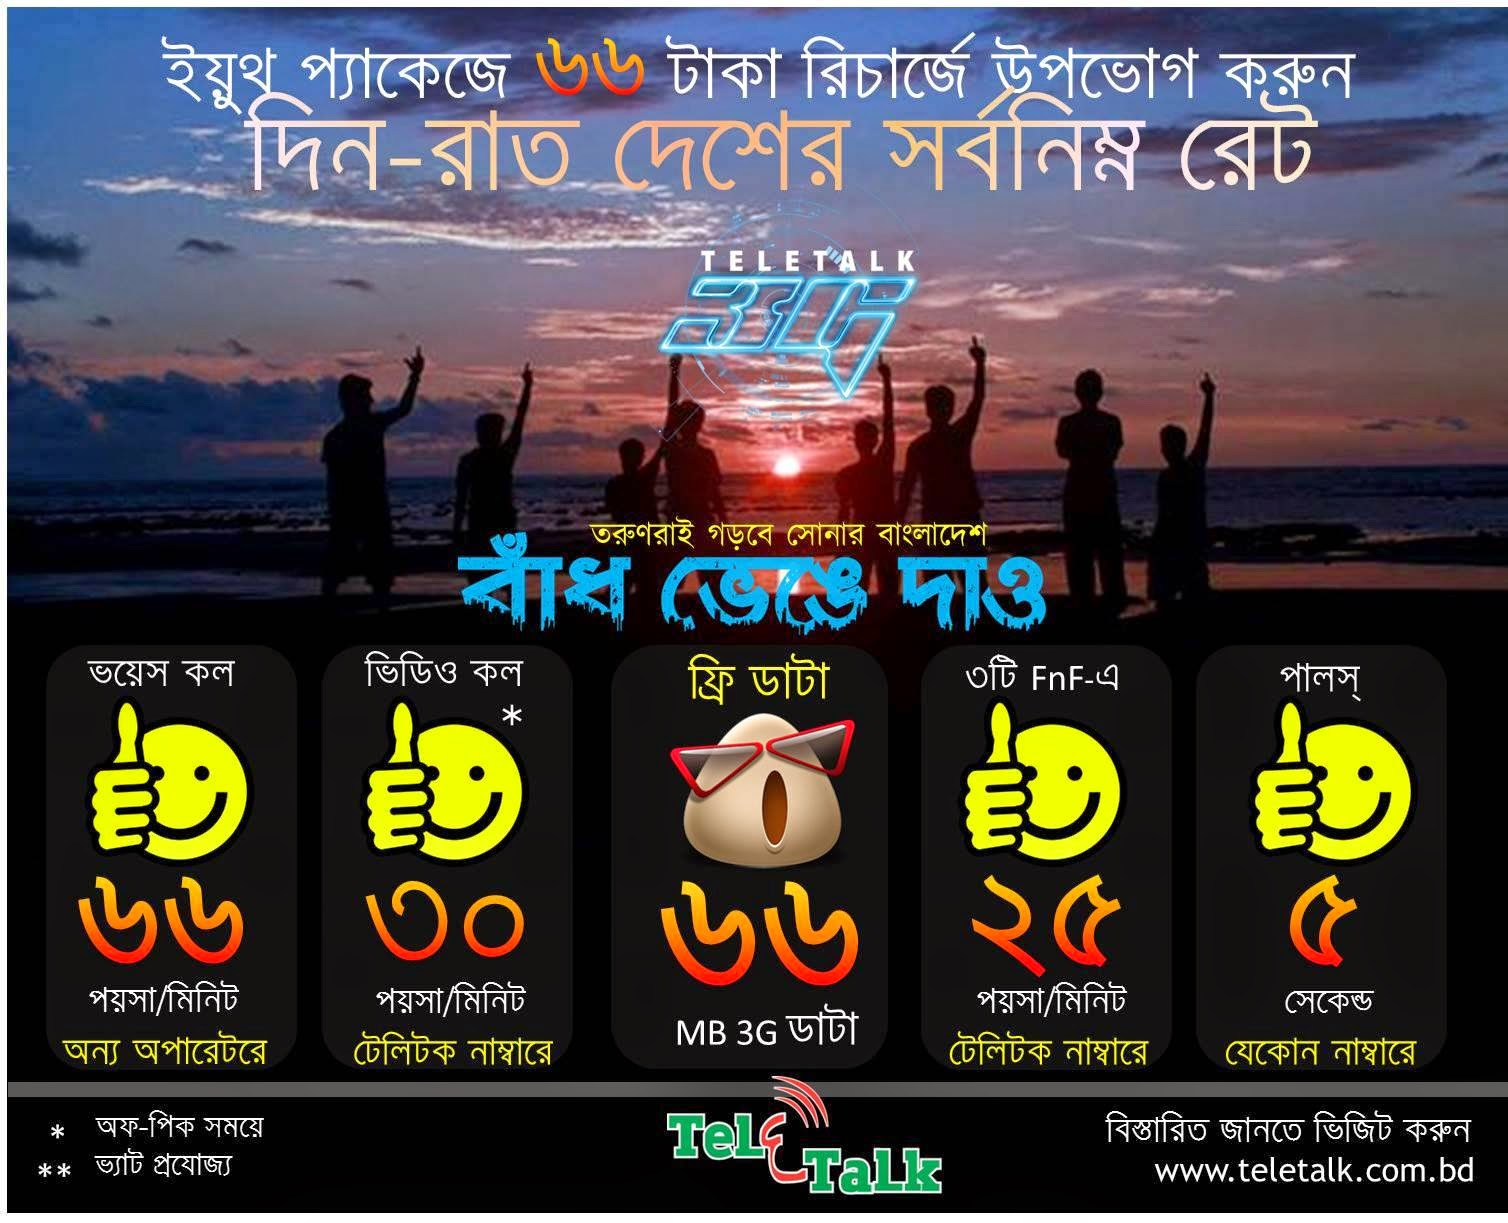 Teletalk-Youth-Recharge-66Tk-To-Get-Wonderful-Offers-Lowest-Call-Rates